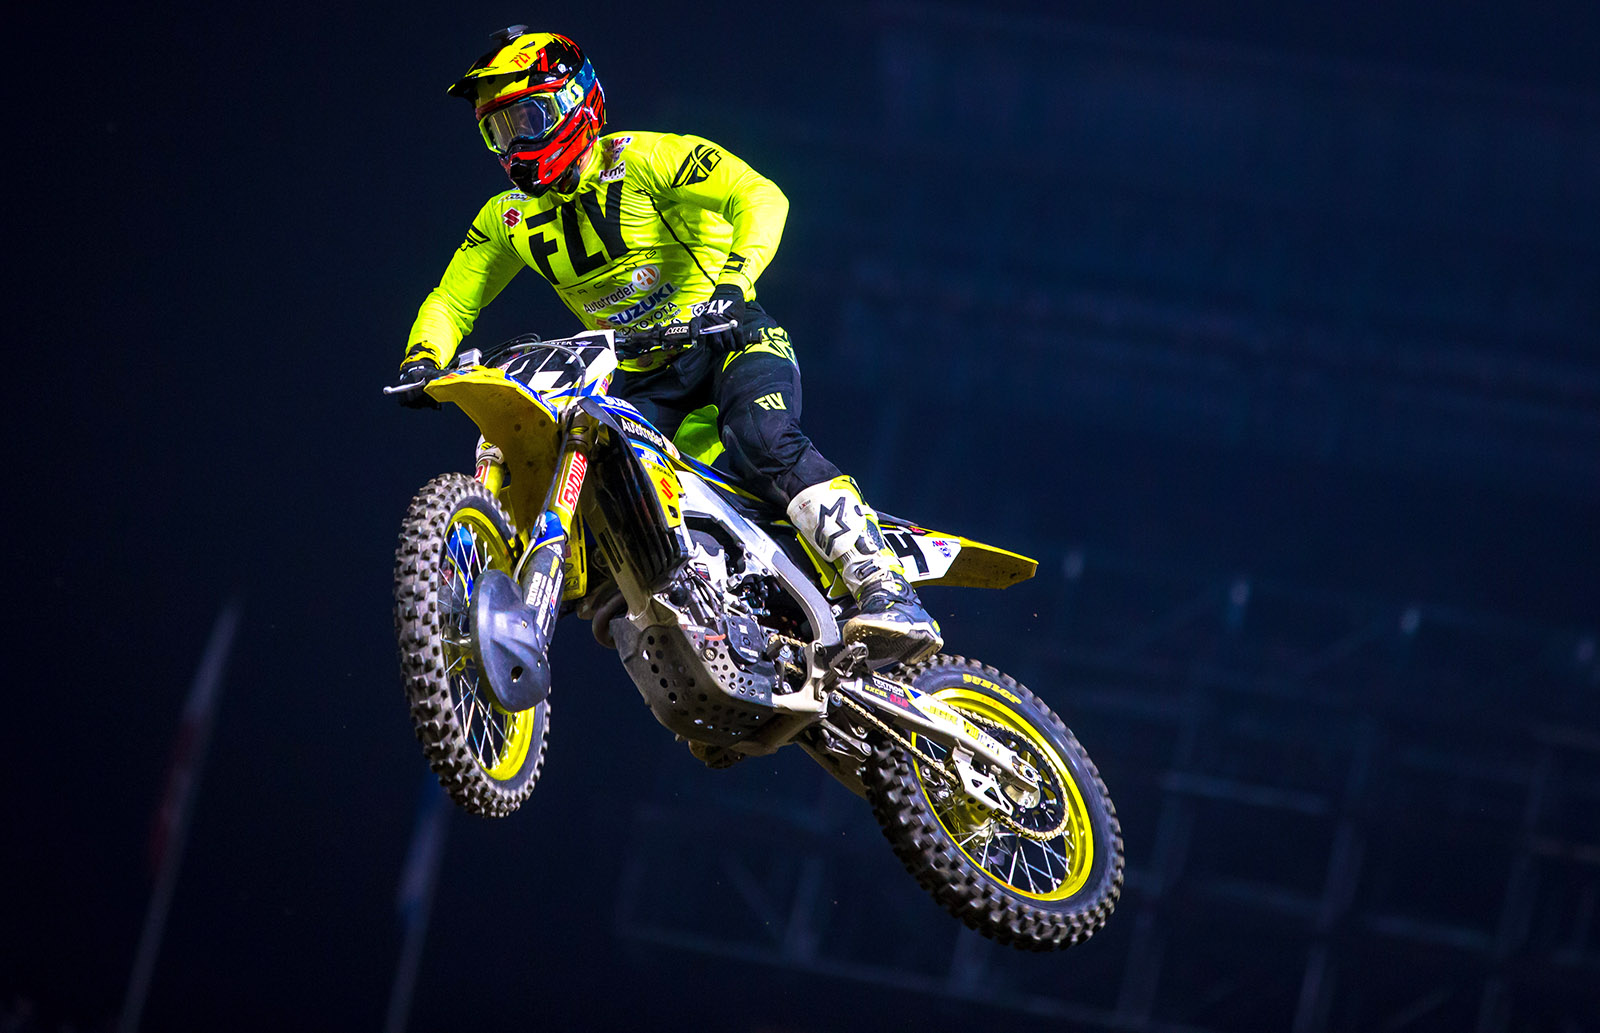 KMC Athlete: Weston Peick